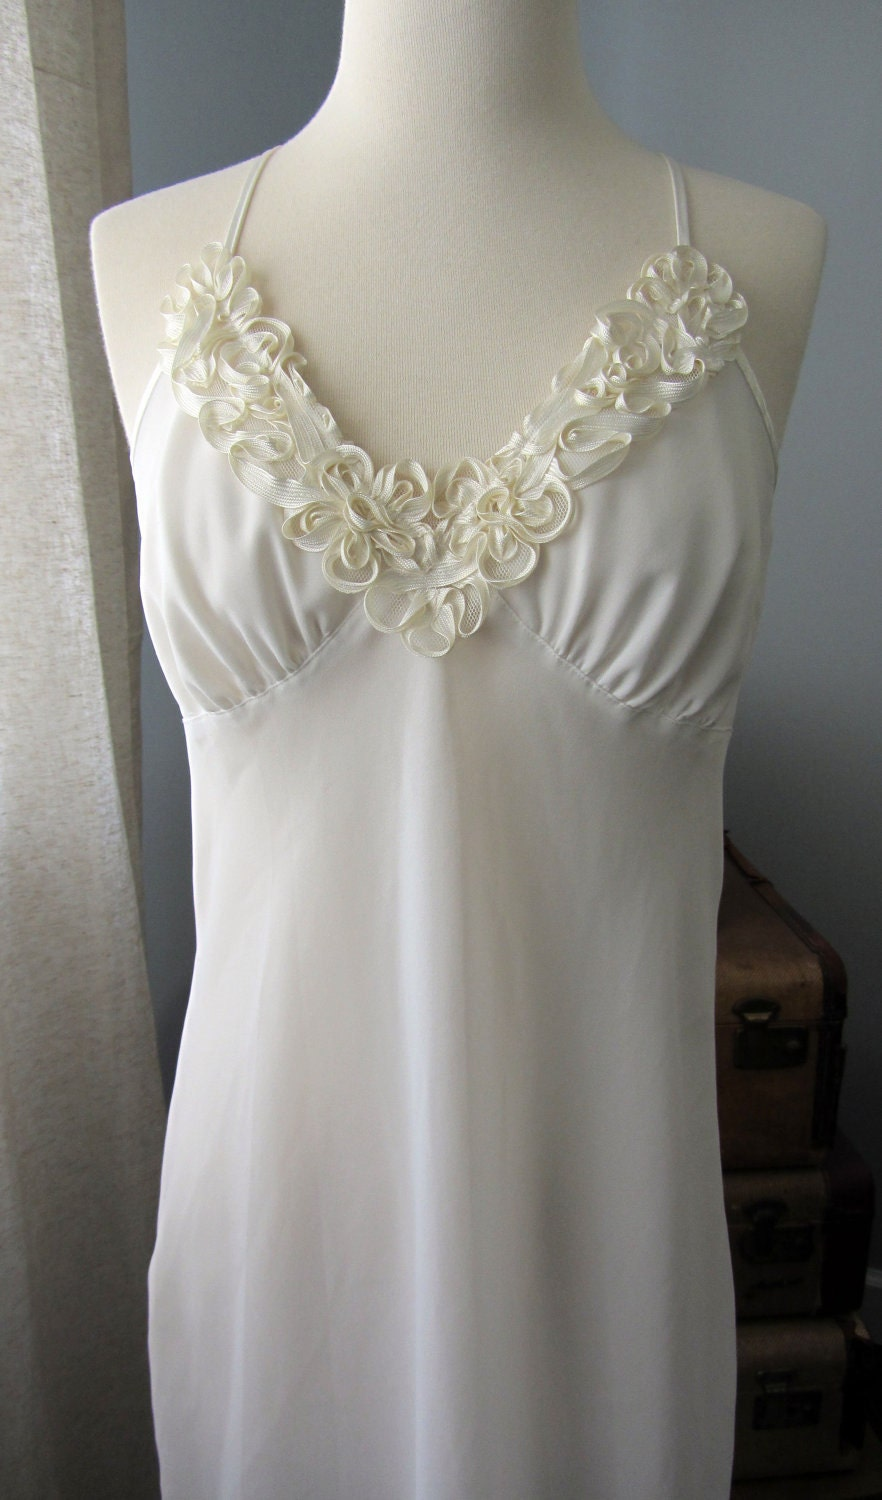 Vintage bridal lingerie night gown by madcapstyle on etsy for Lingerie for wedding dress